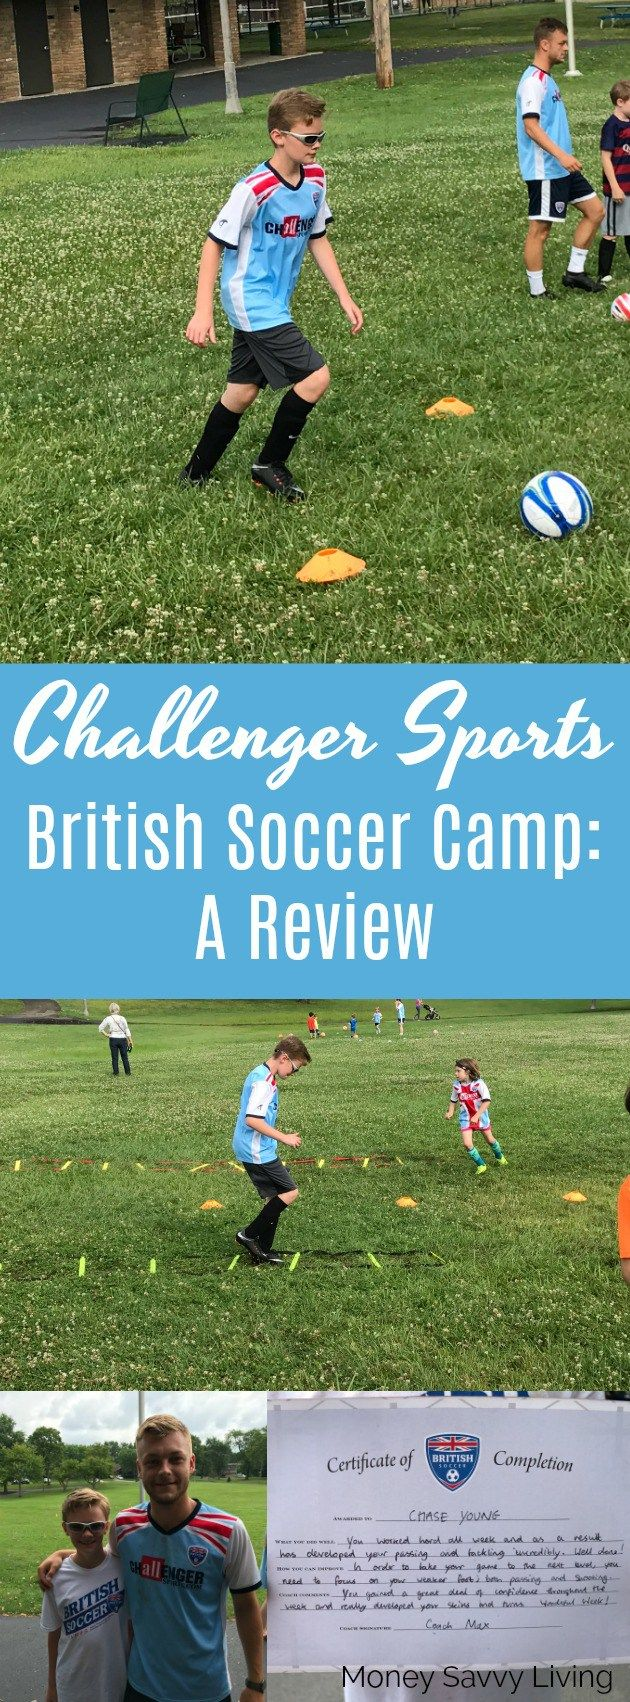 Challenger Sports British Soccer Camp: A Review // Money Savvy Living #soccer #SummerCamp